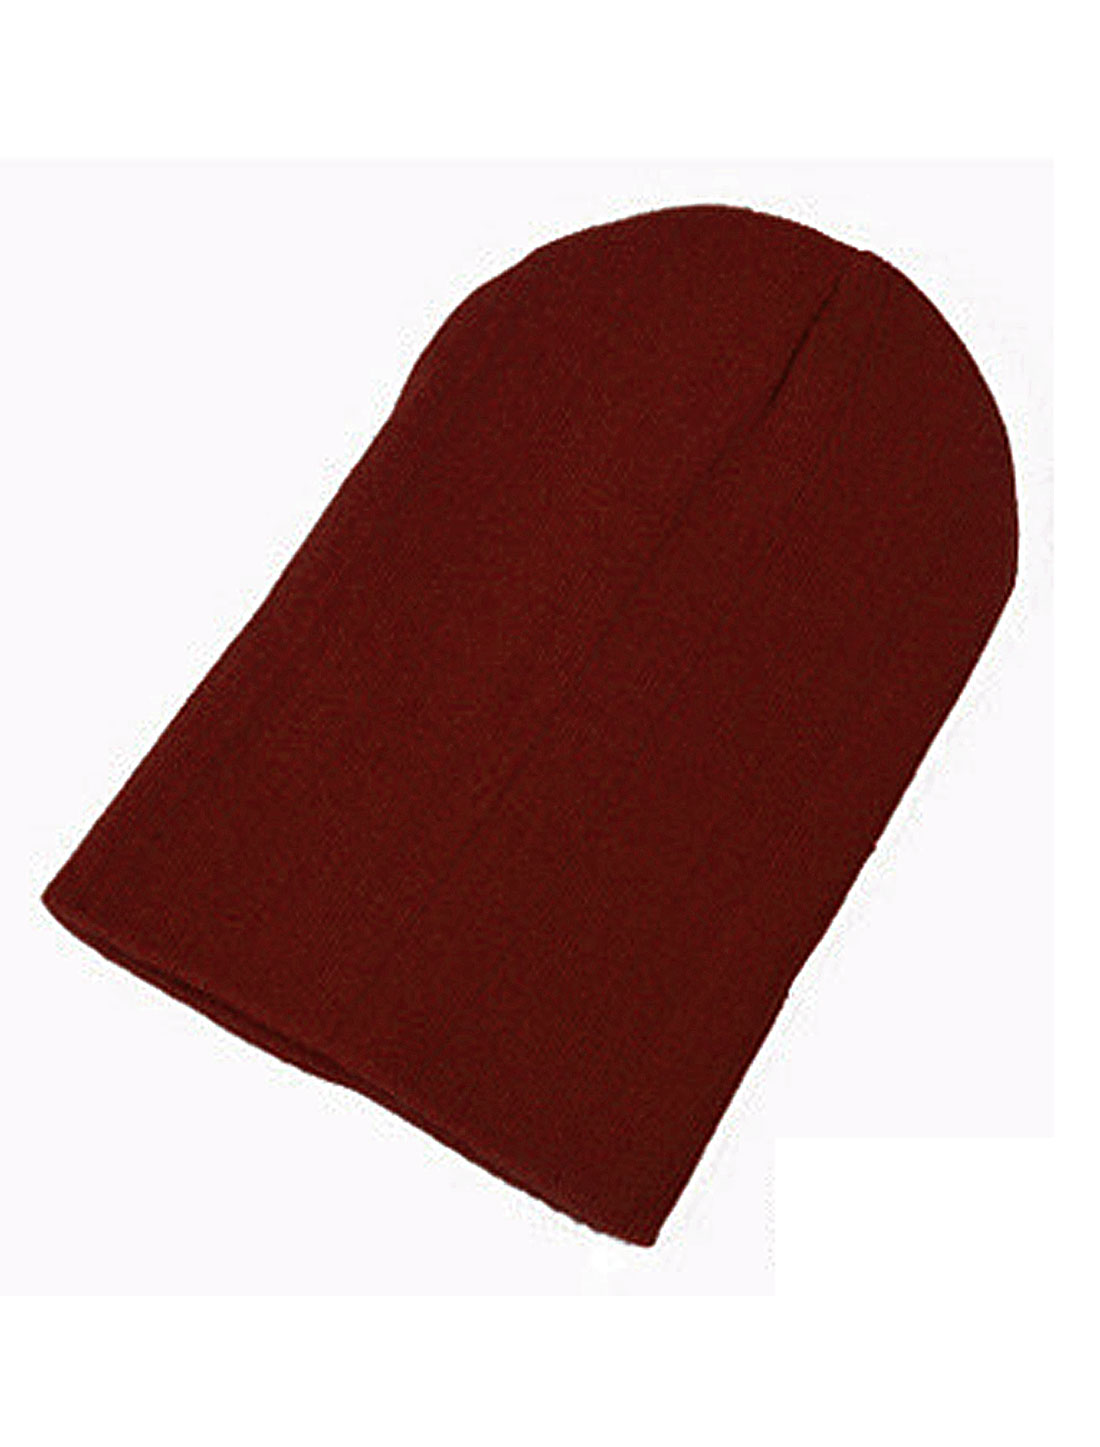 Unisex Burgundy Ribbing Detail Skiing Style Solid Color Cozy Beanie Hat